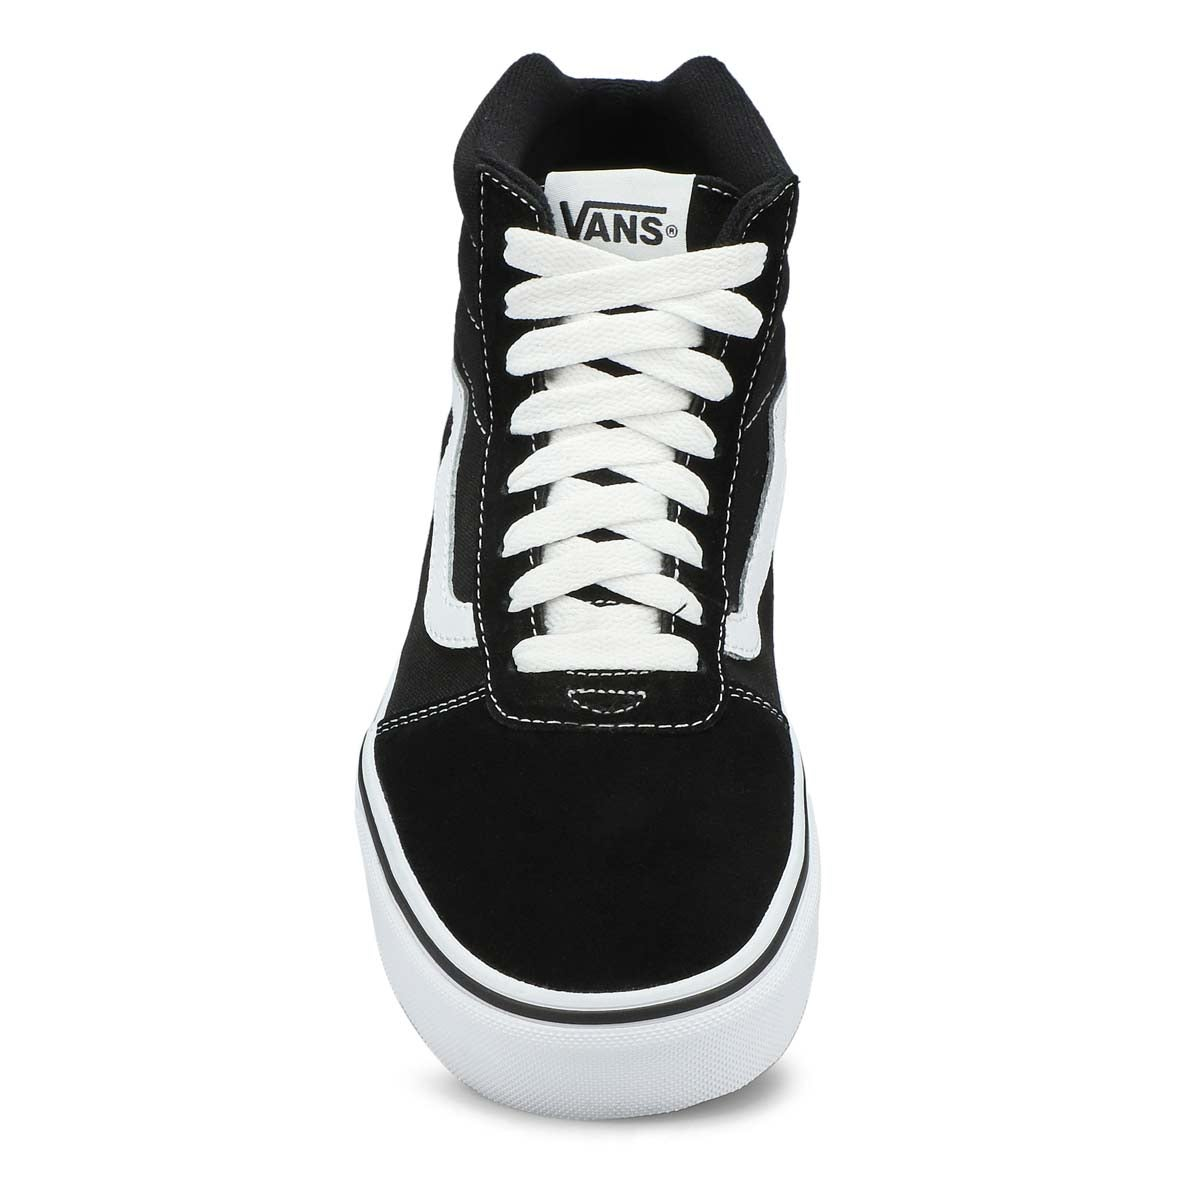 Mns Ward Hi blk/wht lace up sneaker